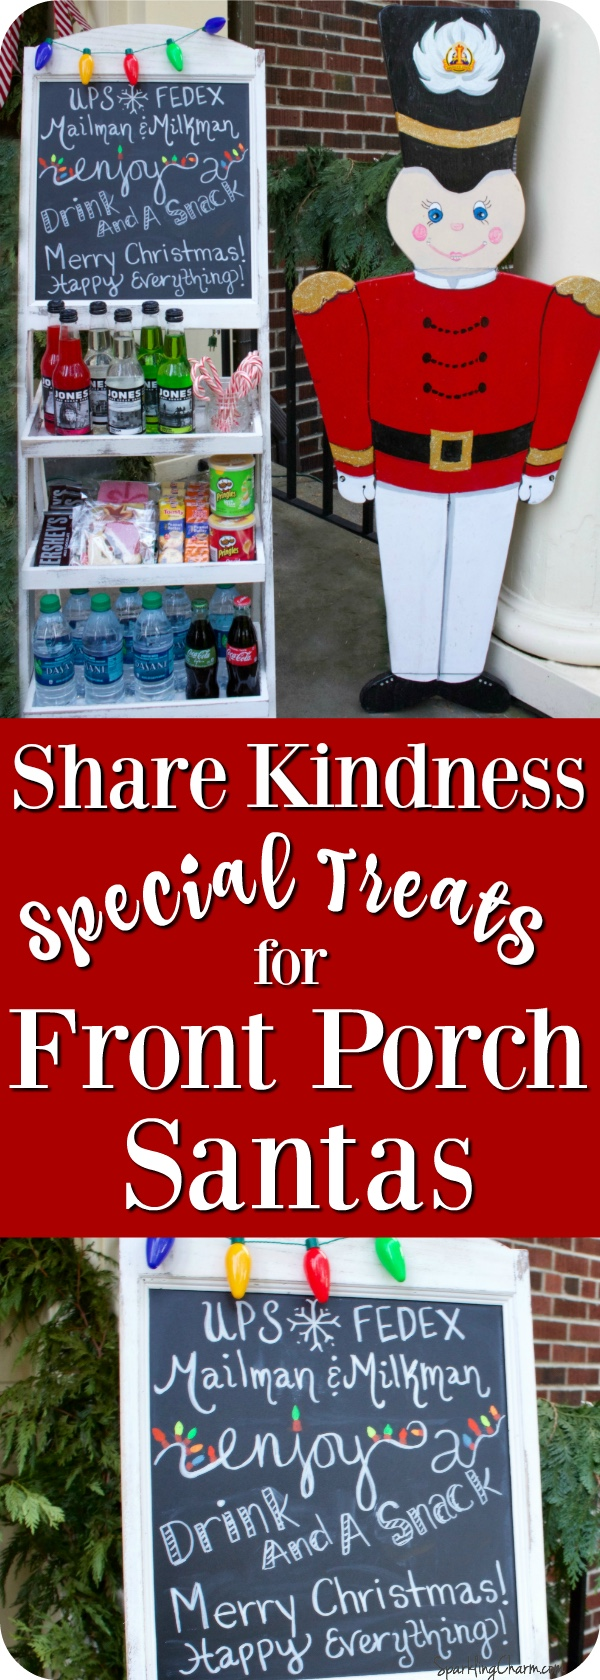 Sparkle Tip: Share Kindness! Special Treats for Front Porch Santas